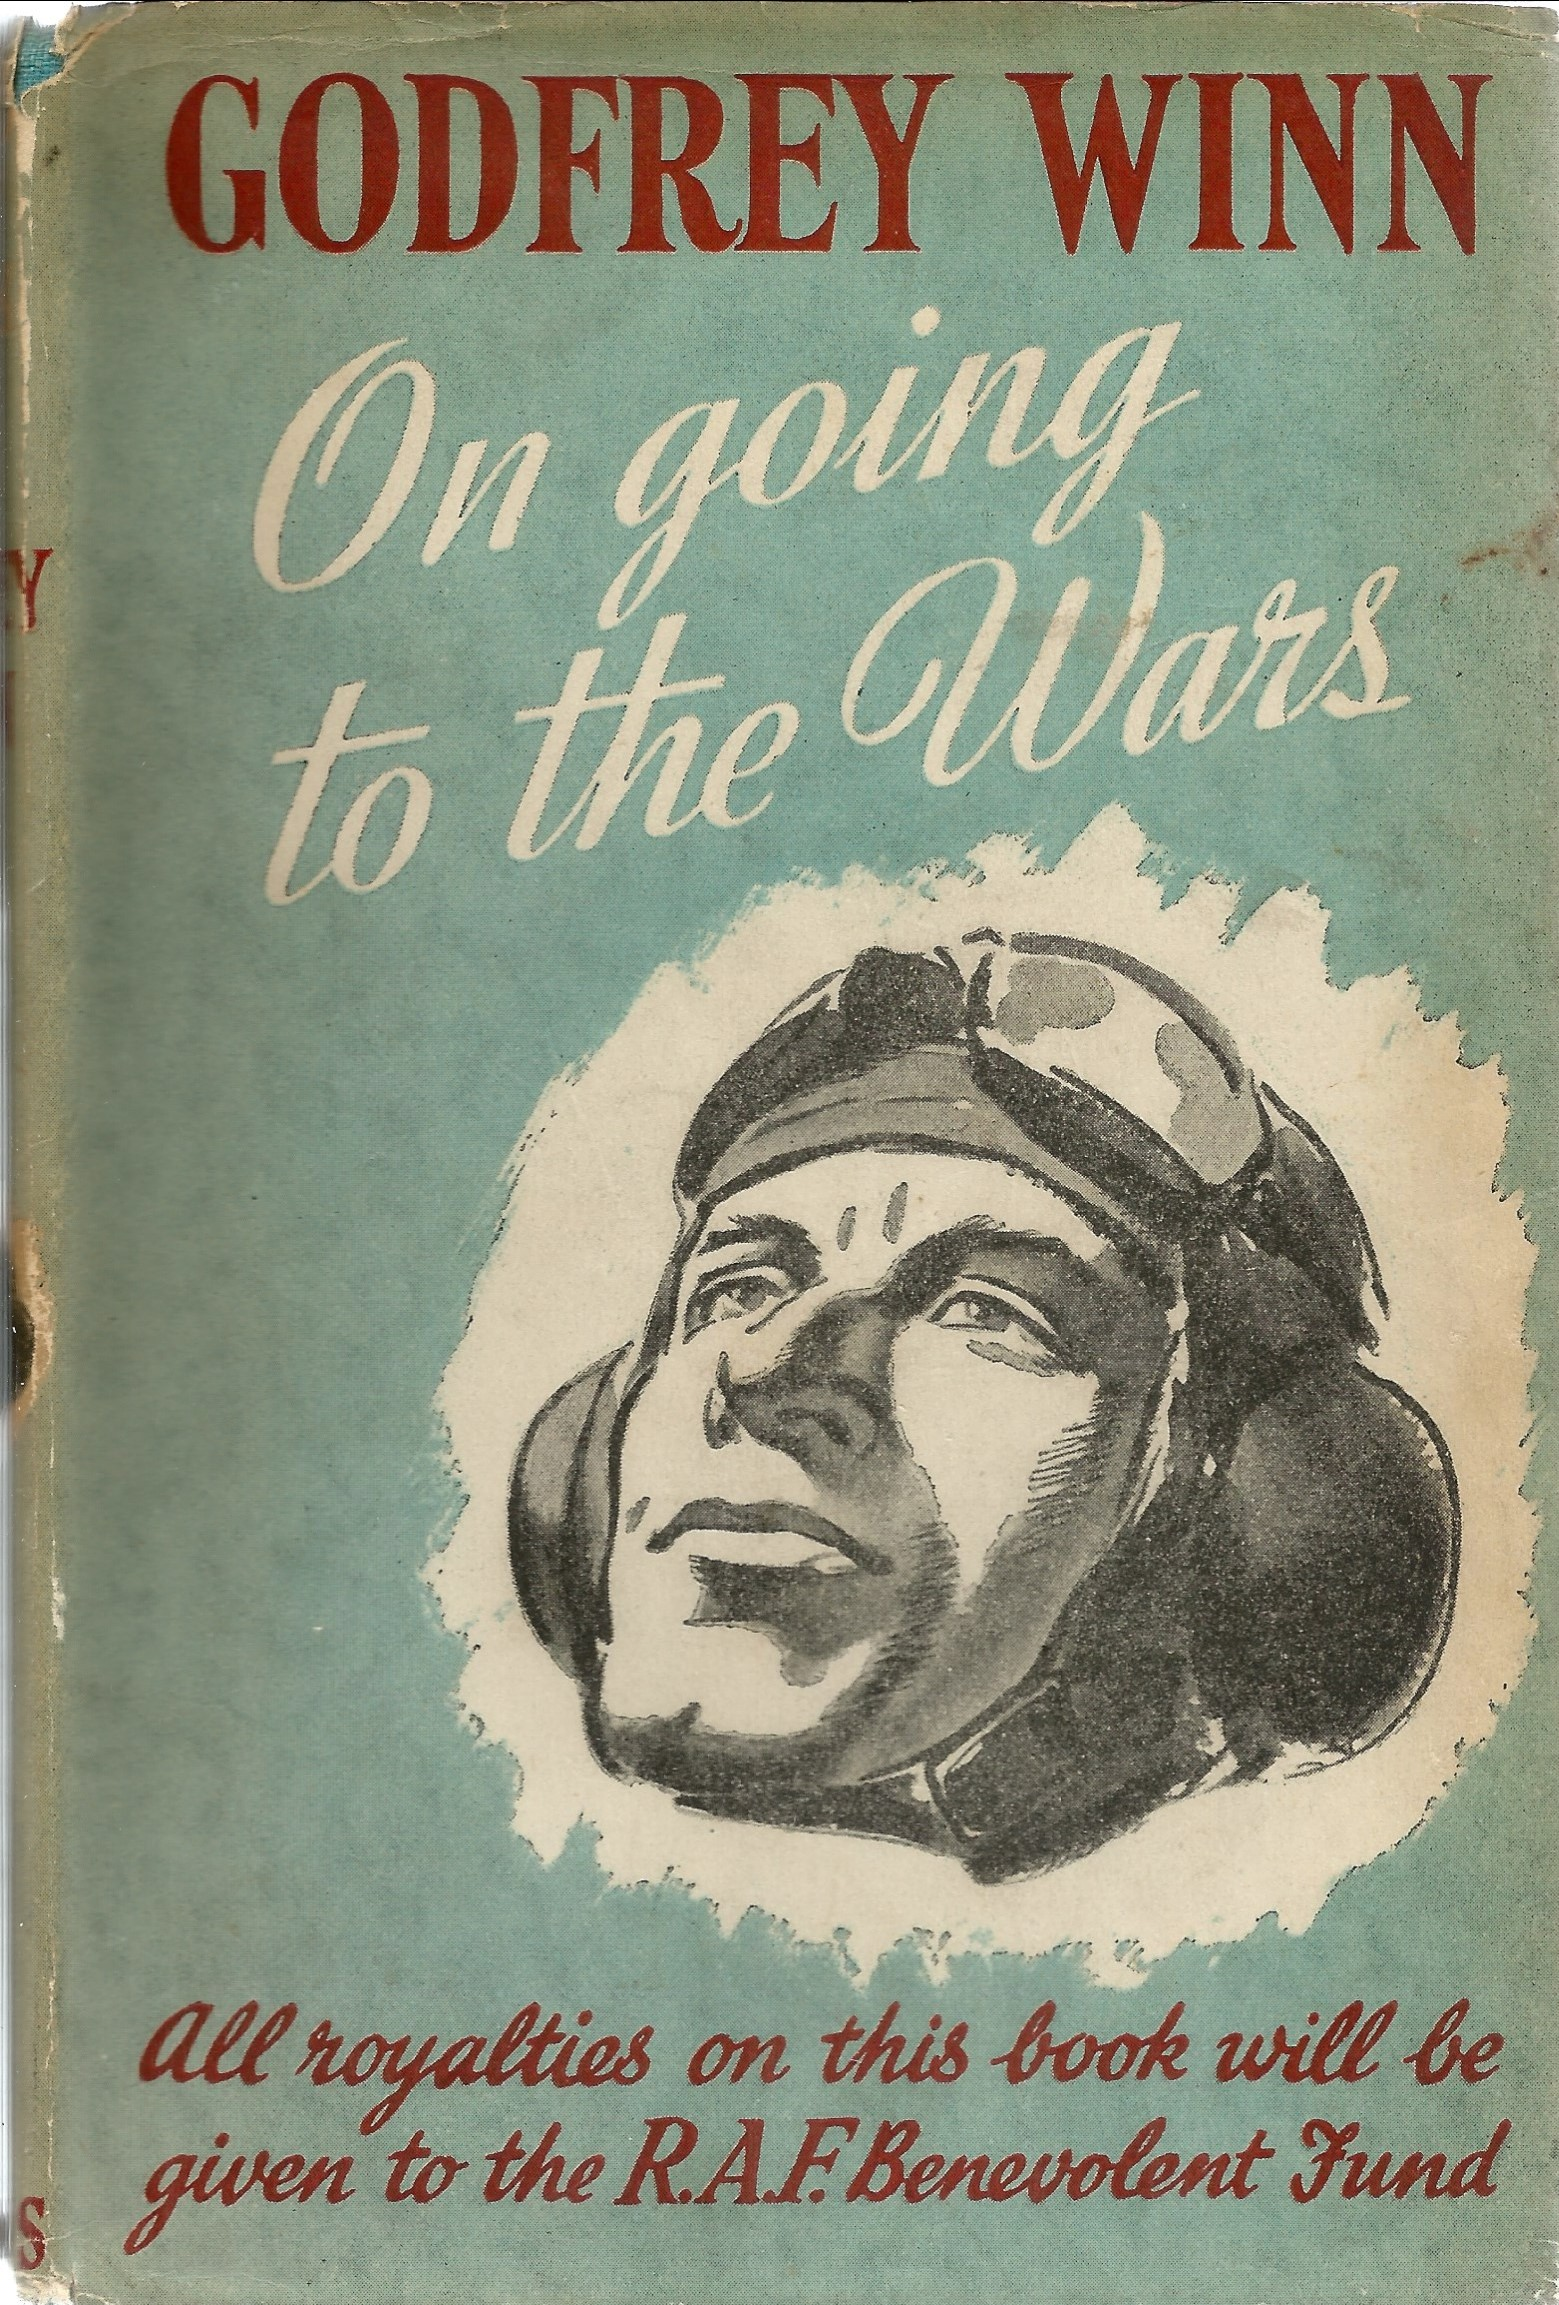 Godfrey Winn. On Going To The Wars. WW2 hardback book. Showing signs of age. Dedicated. Signed by